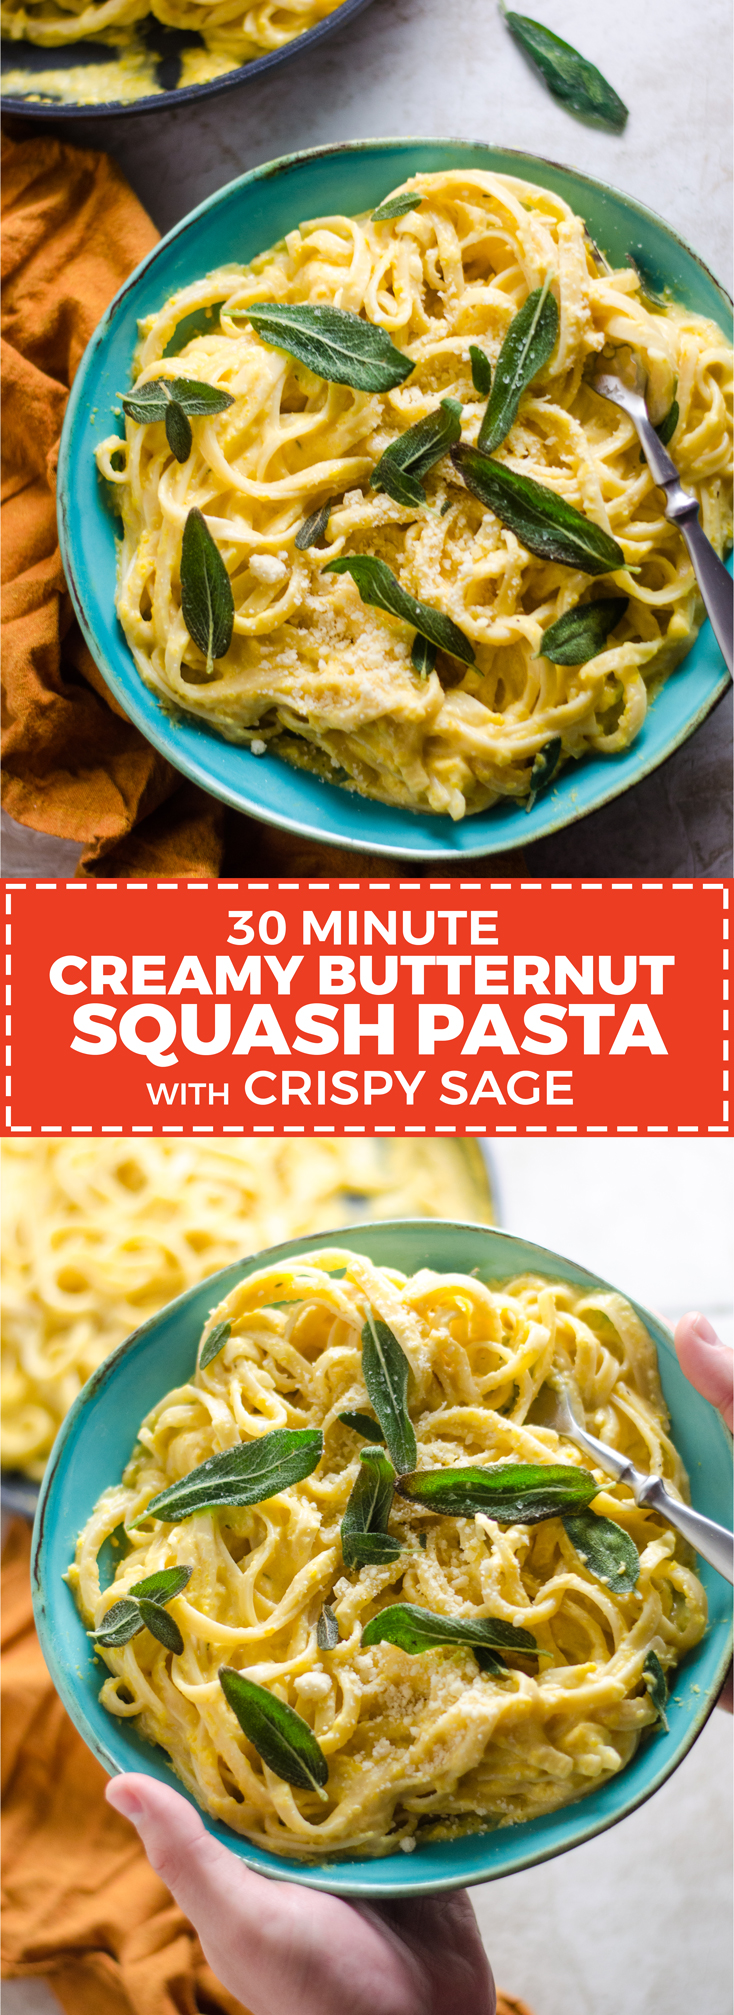 30 Minute Creamy Butternut Squash Pasta with Crispy Sage. This cheesy, creamy Fall pasta makes the perfect dinner for a cold weeknight. | hostthetoast.com